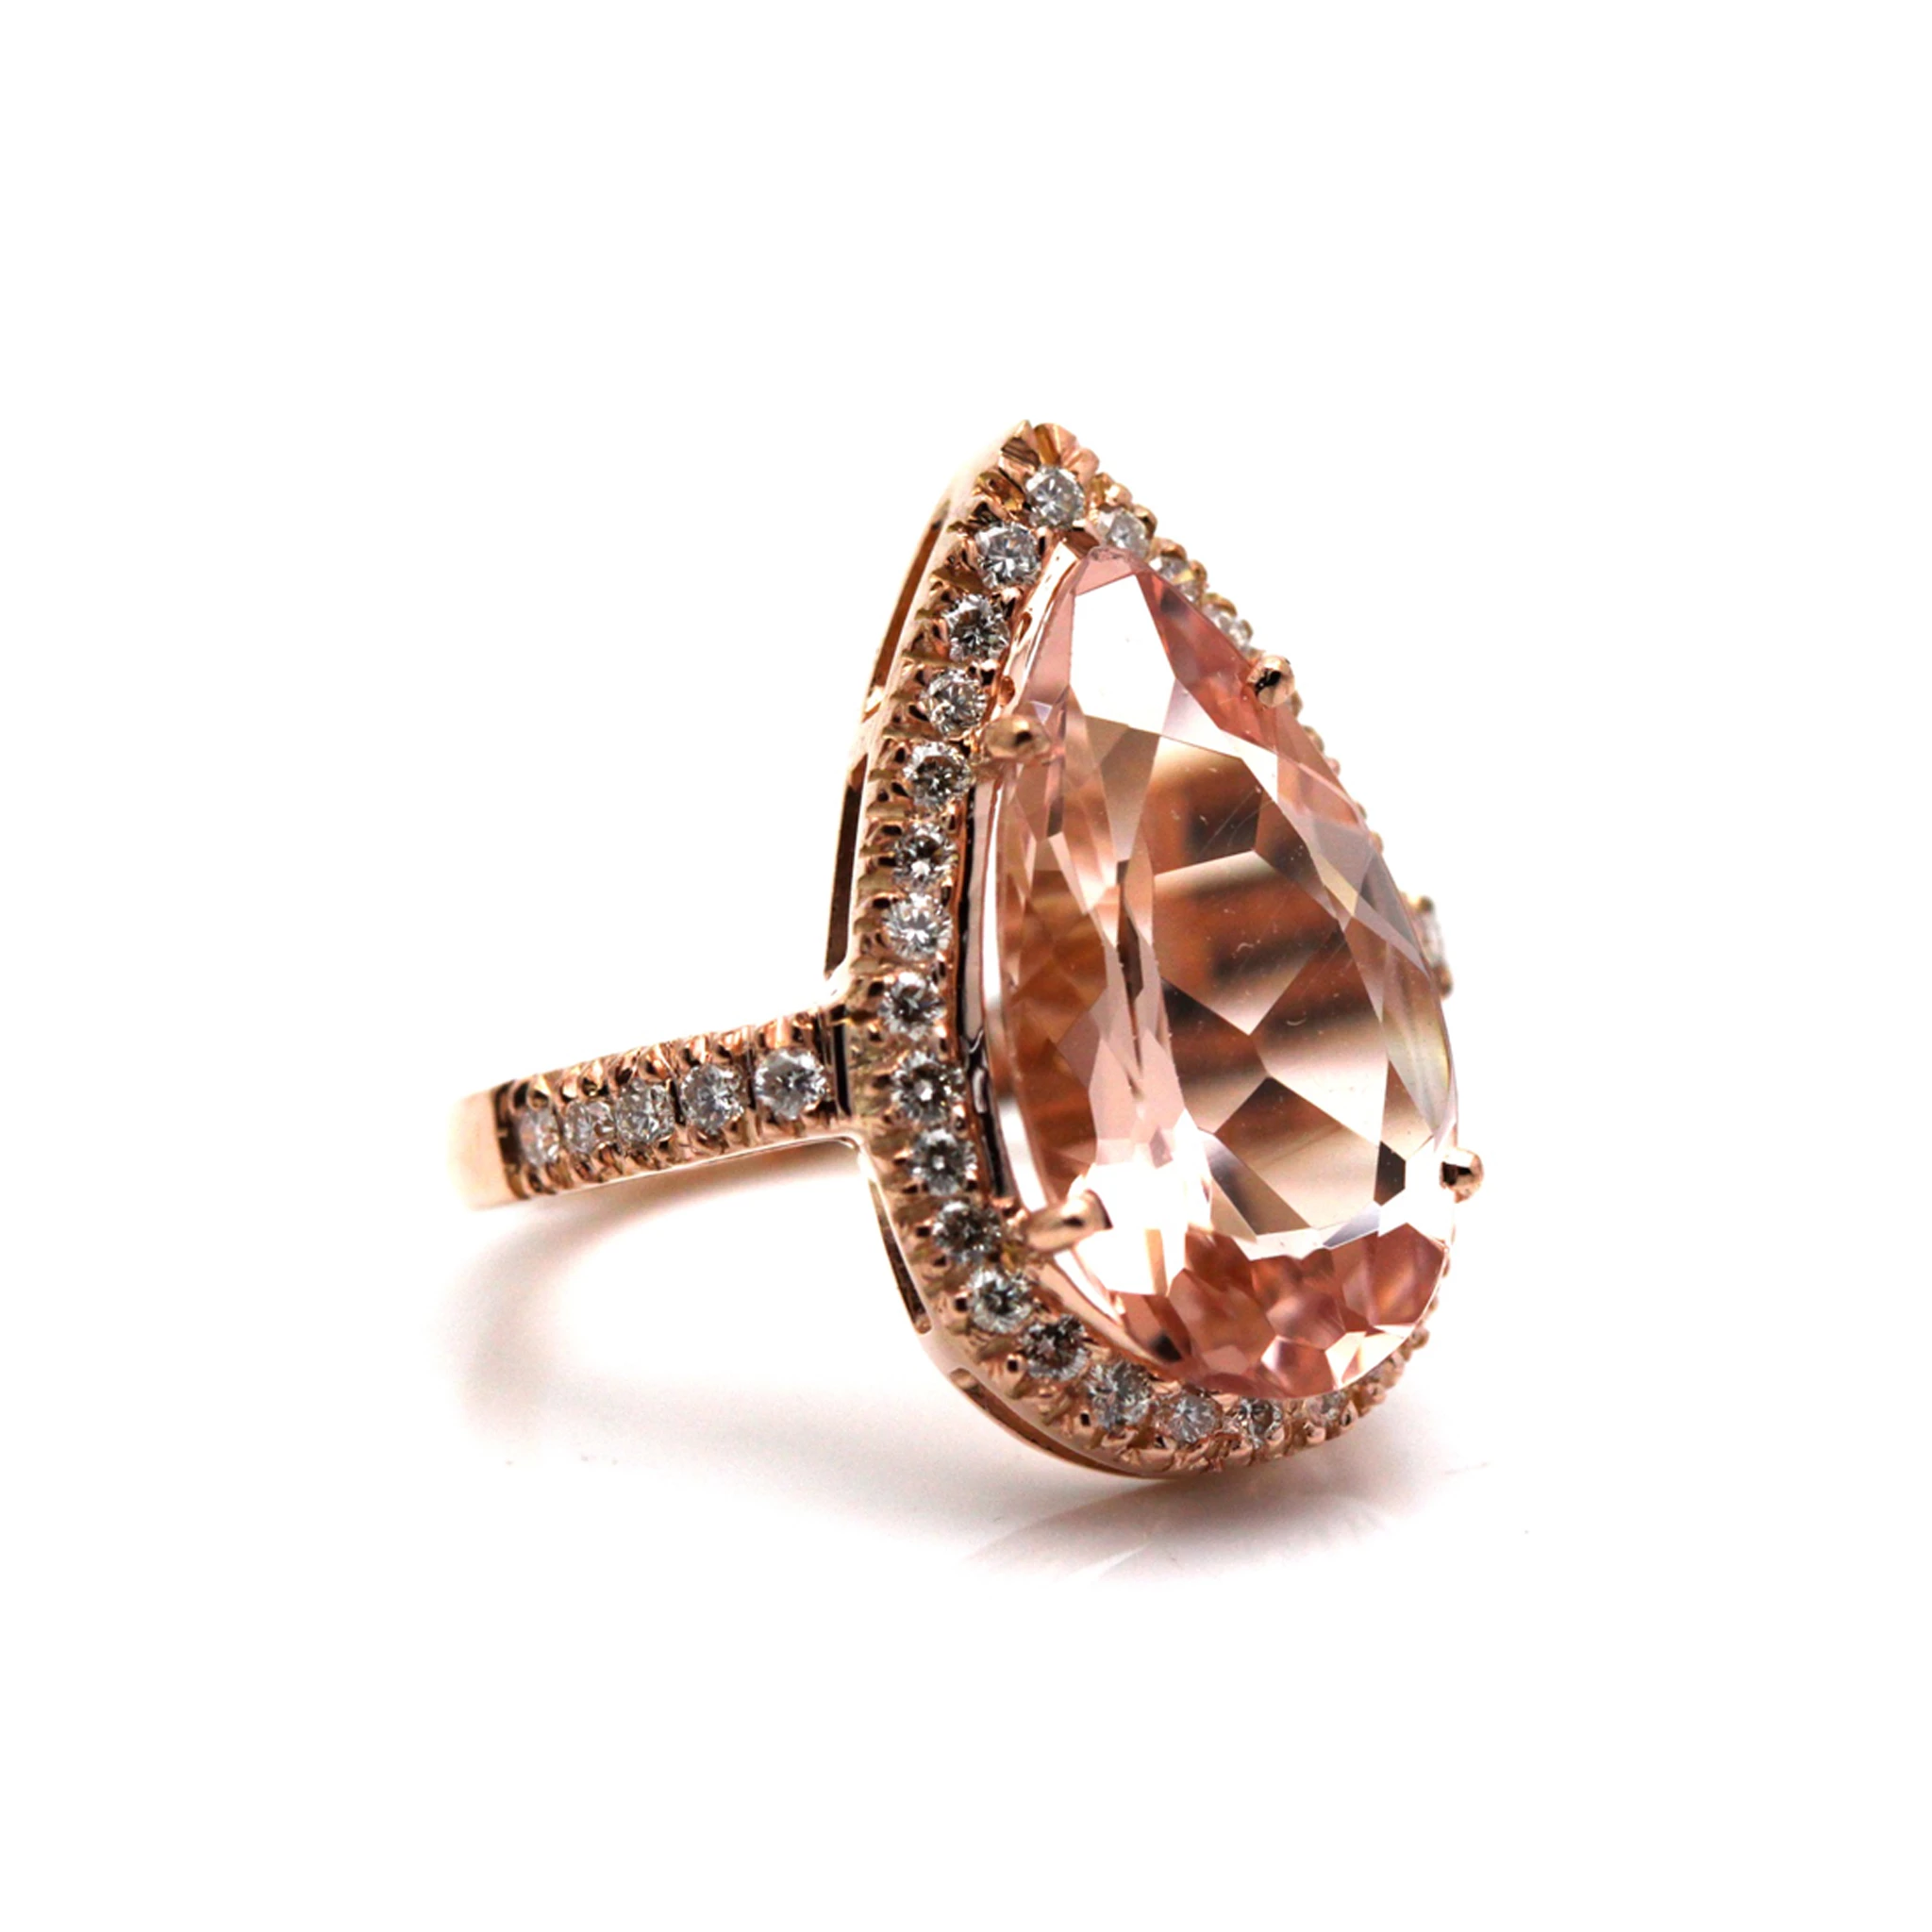 Morganite And Diamond Ring in 18kt Rose Gold